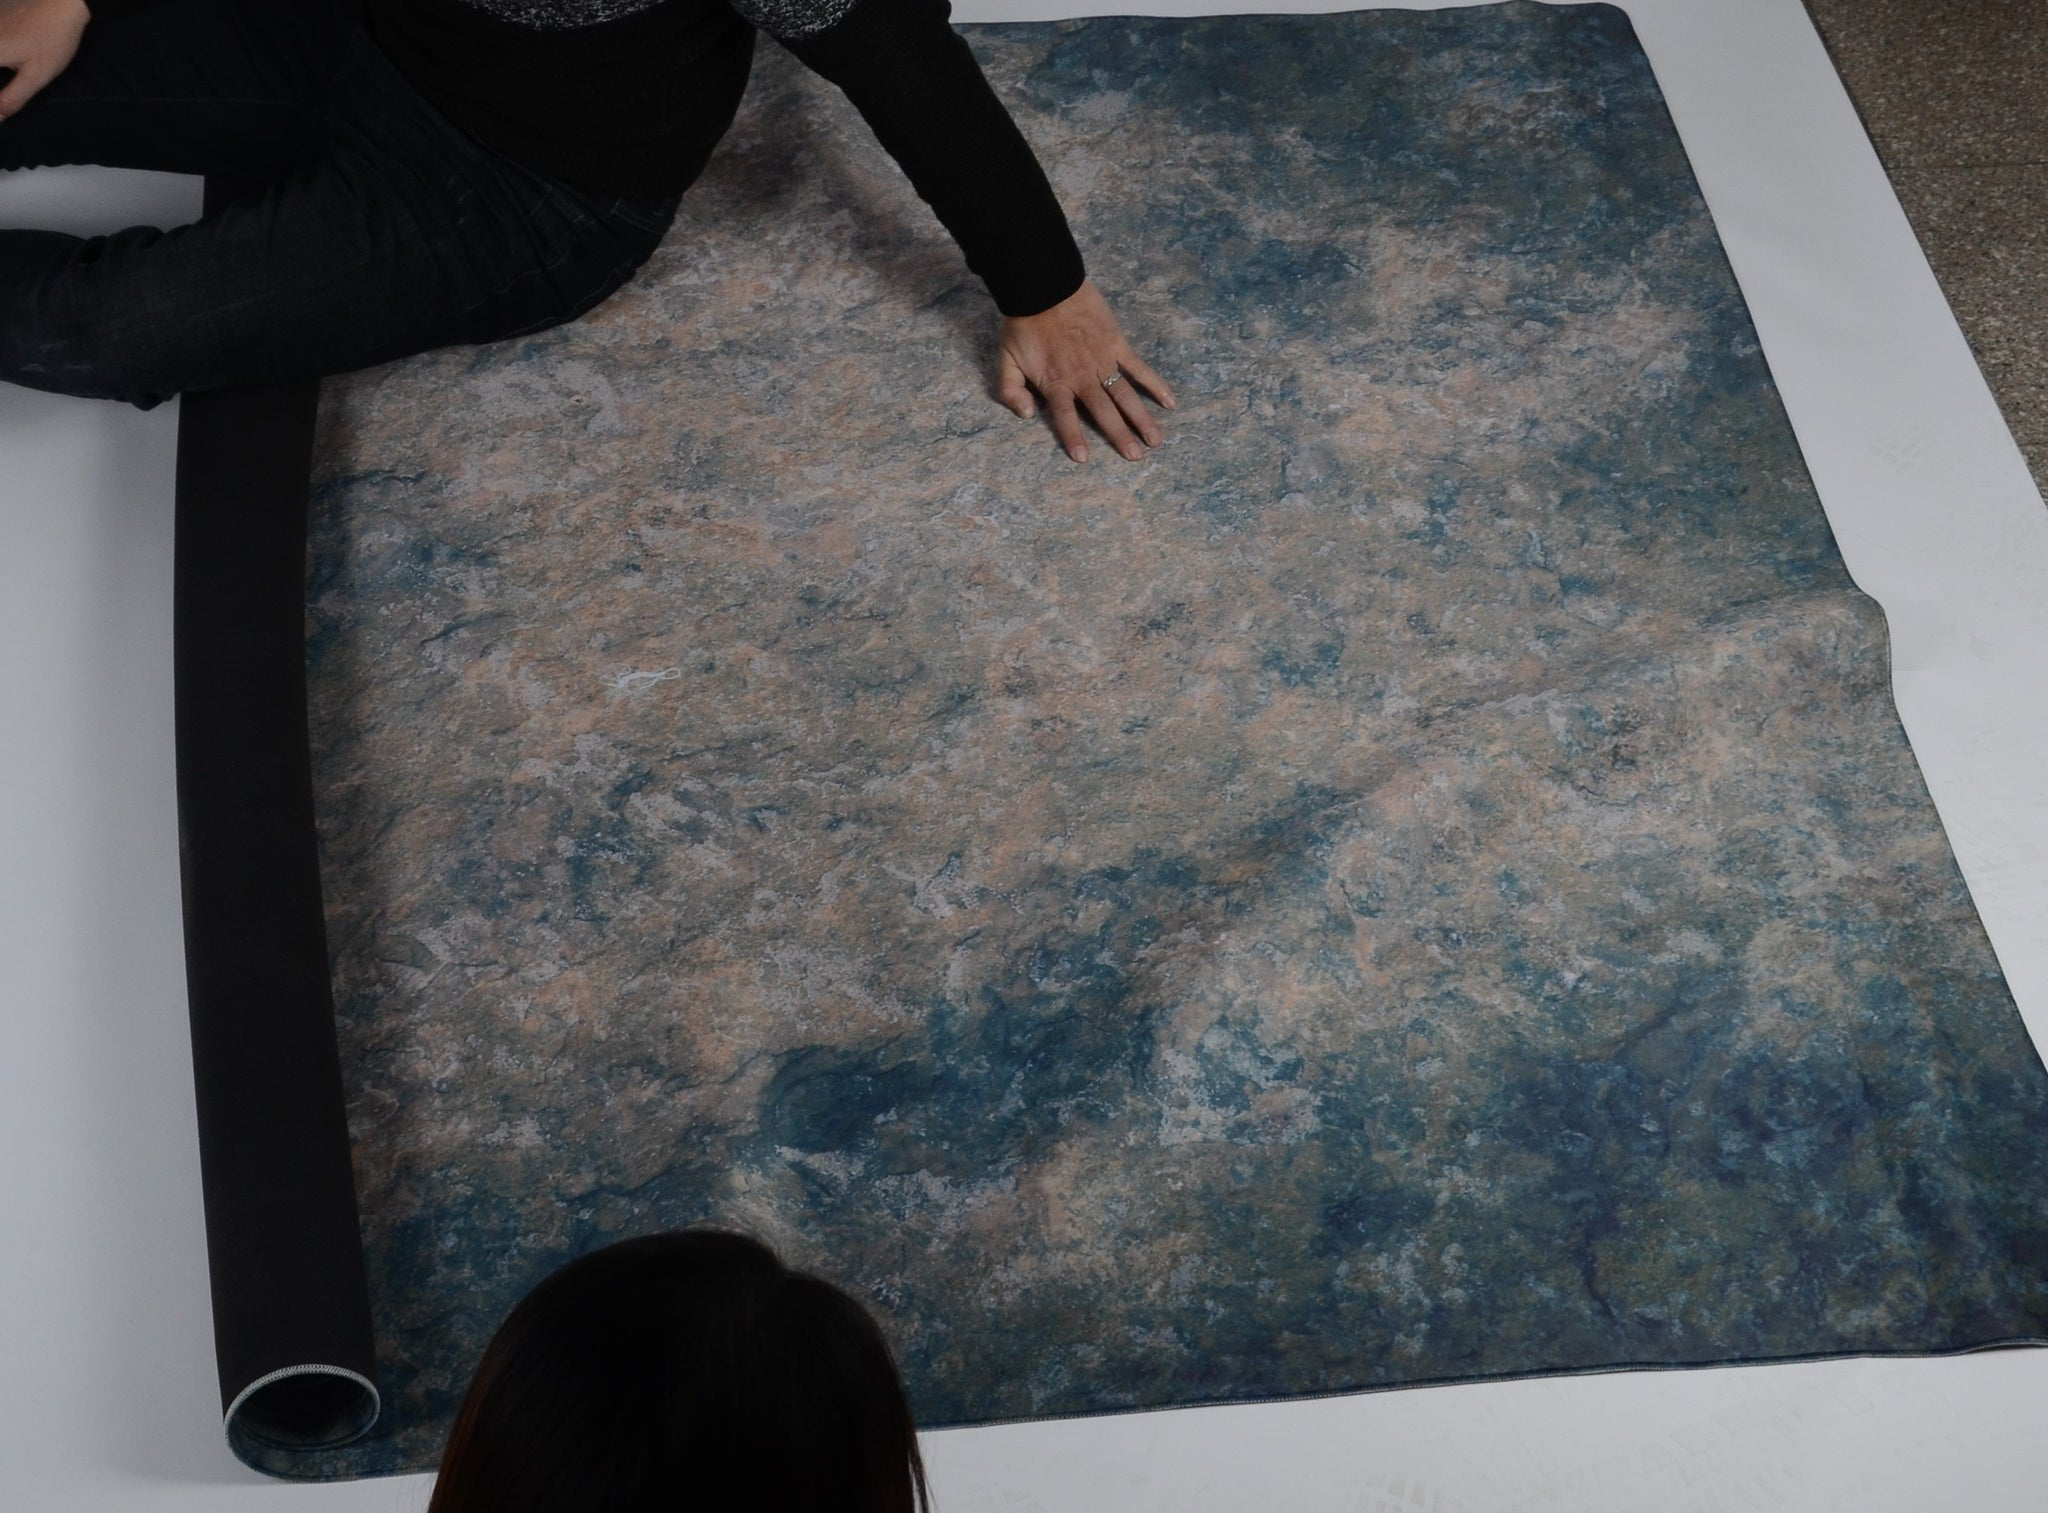 Load image into Gallery viewer, 5x8ft(1.5x2.5m) Texture Color floor mat Rubber floor Mat - Kate backdrops UK